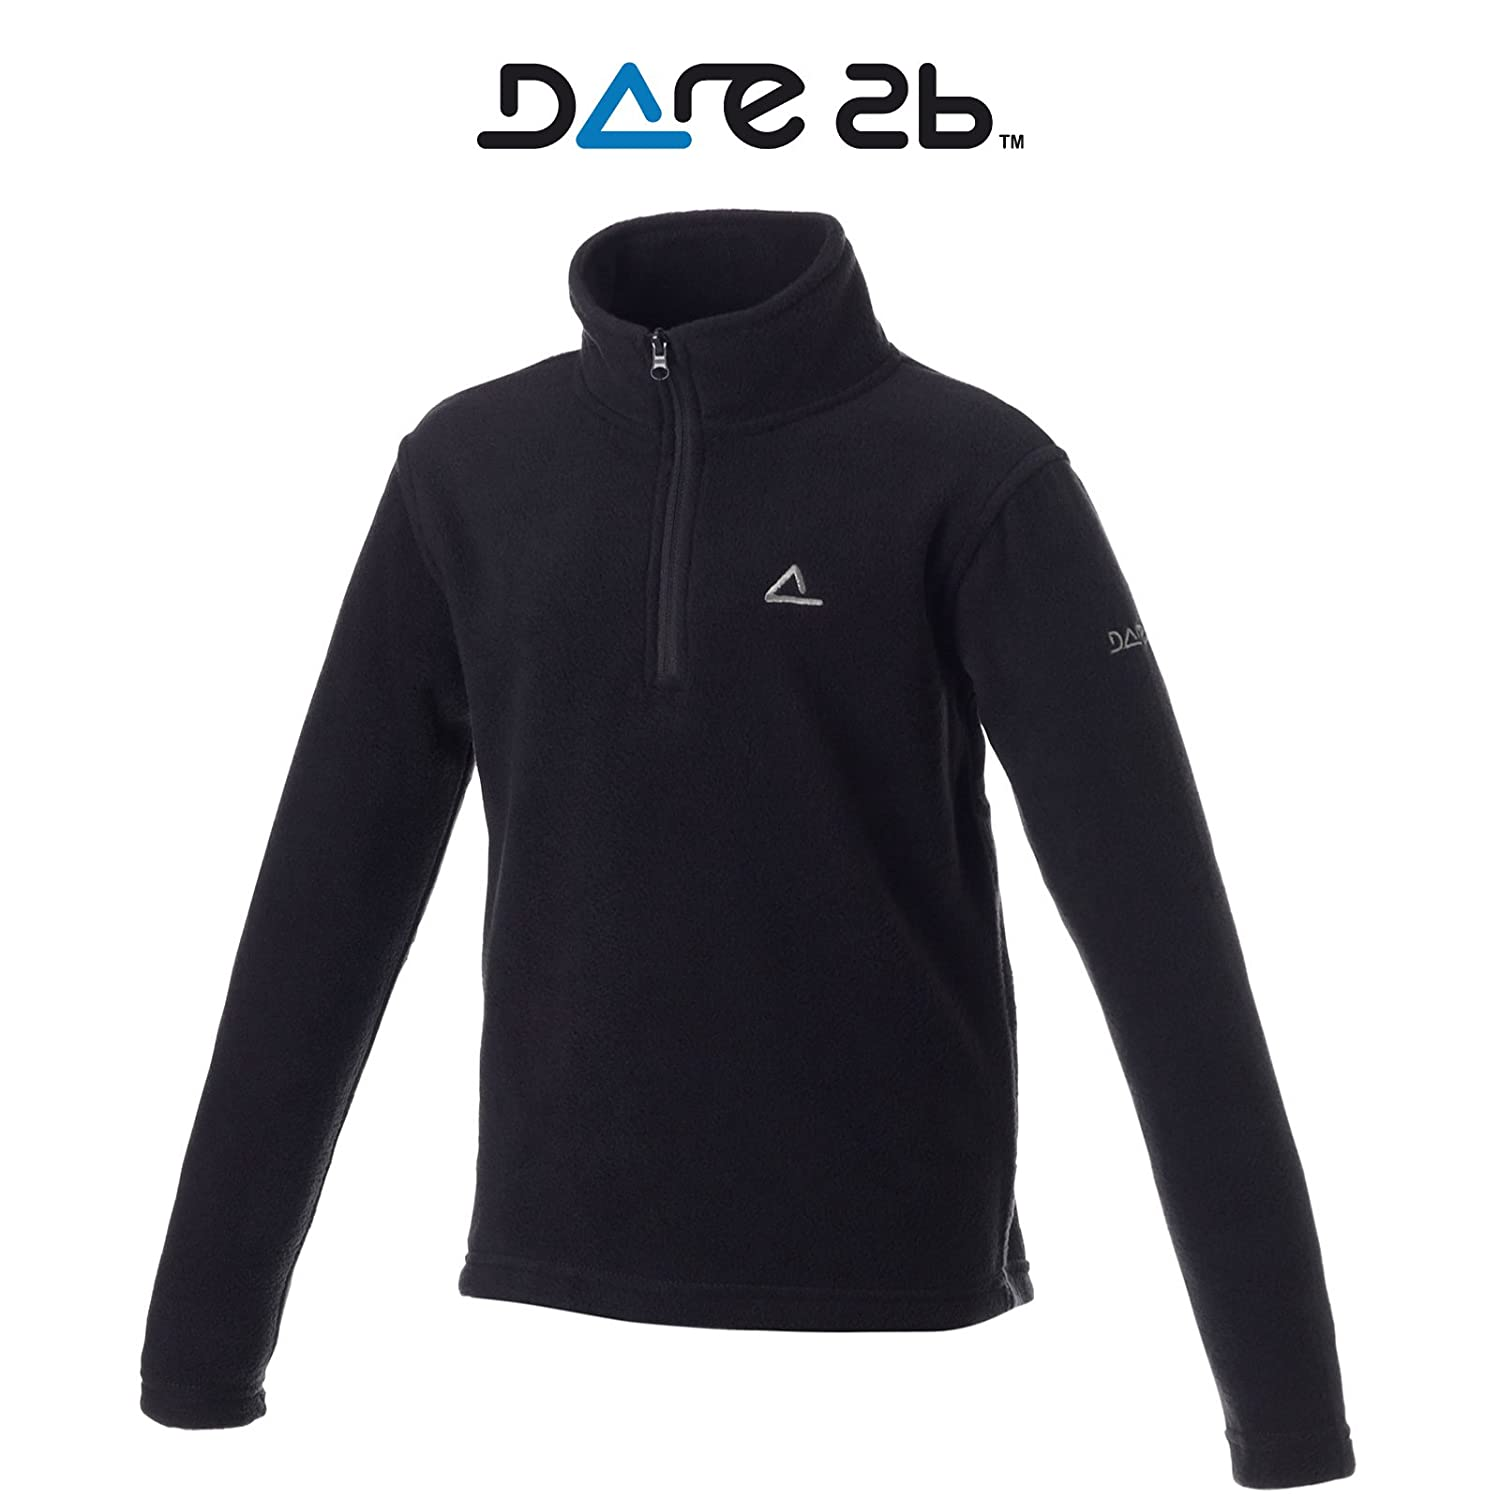 Dare 2B Nipper Boys Fleece